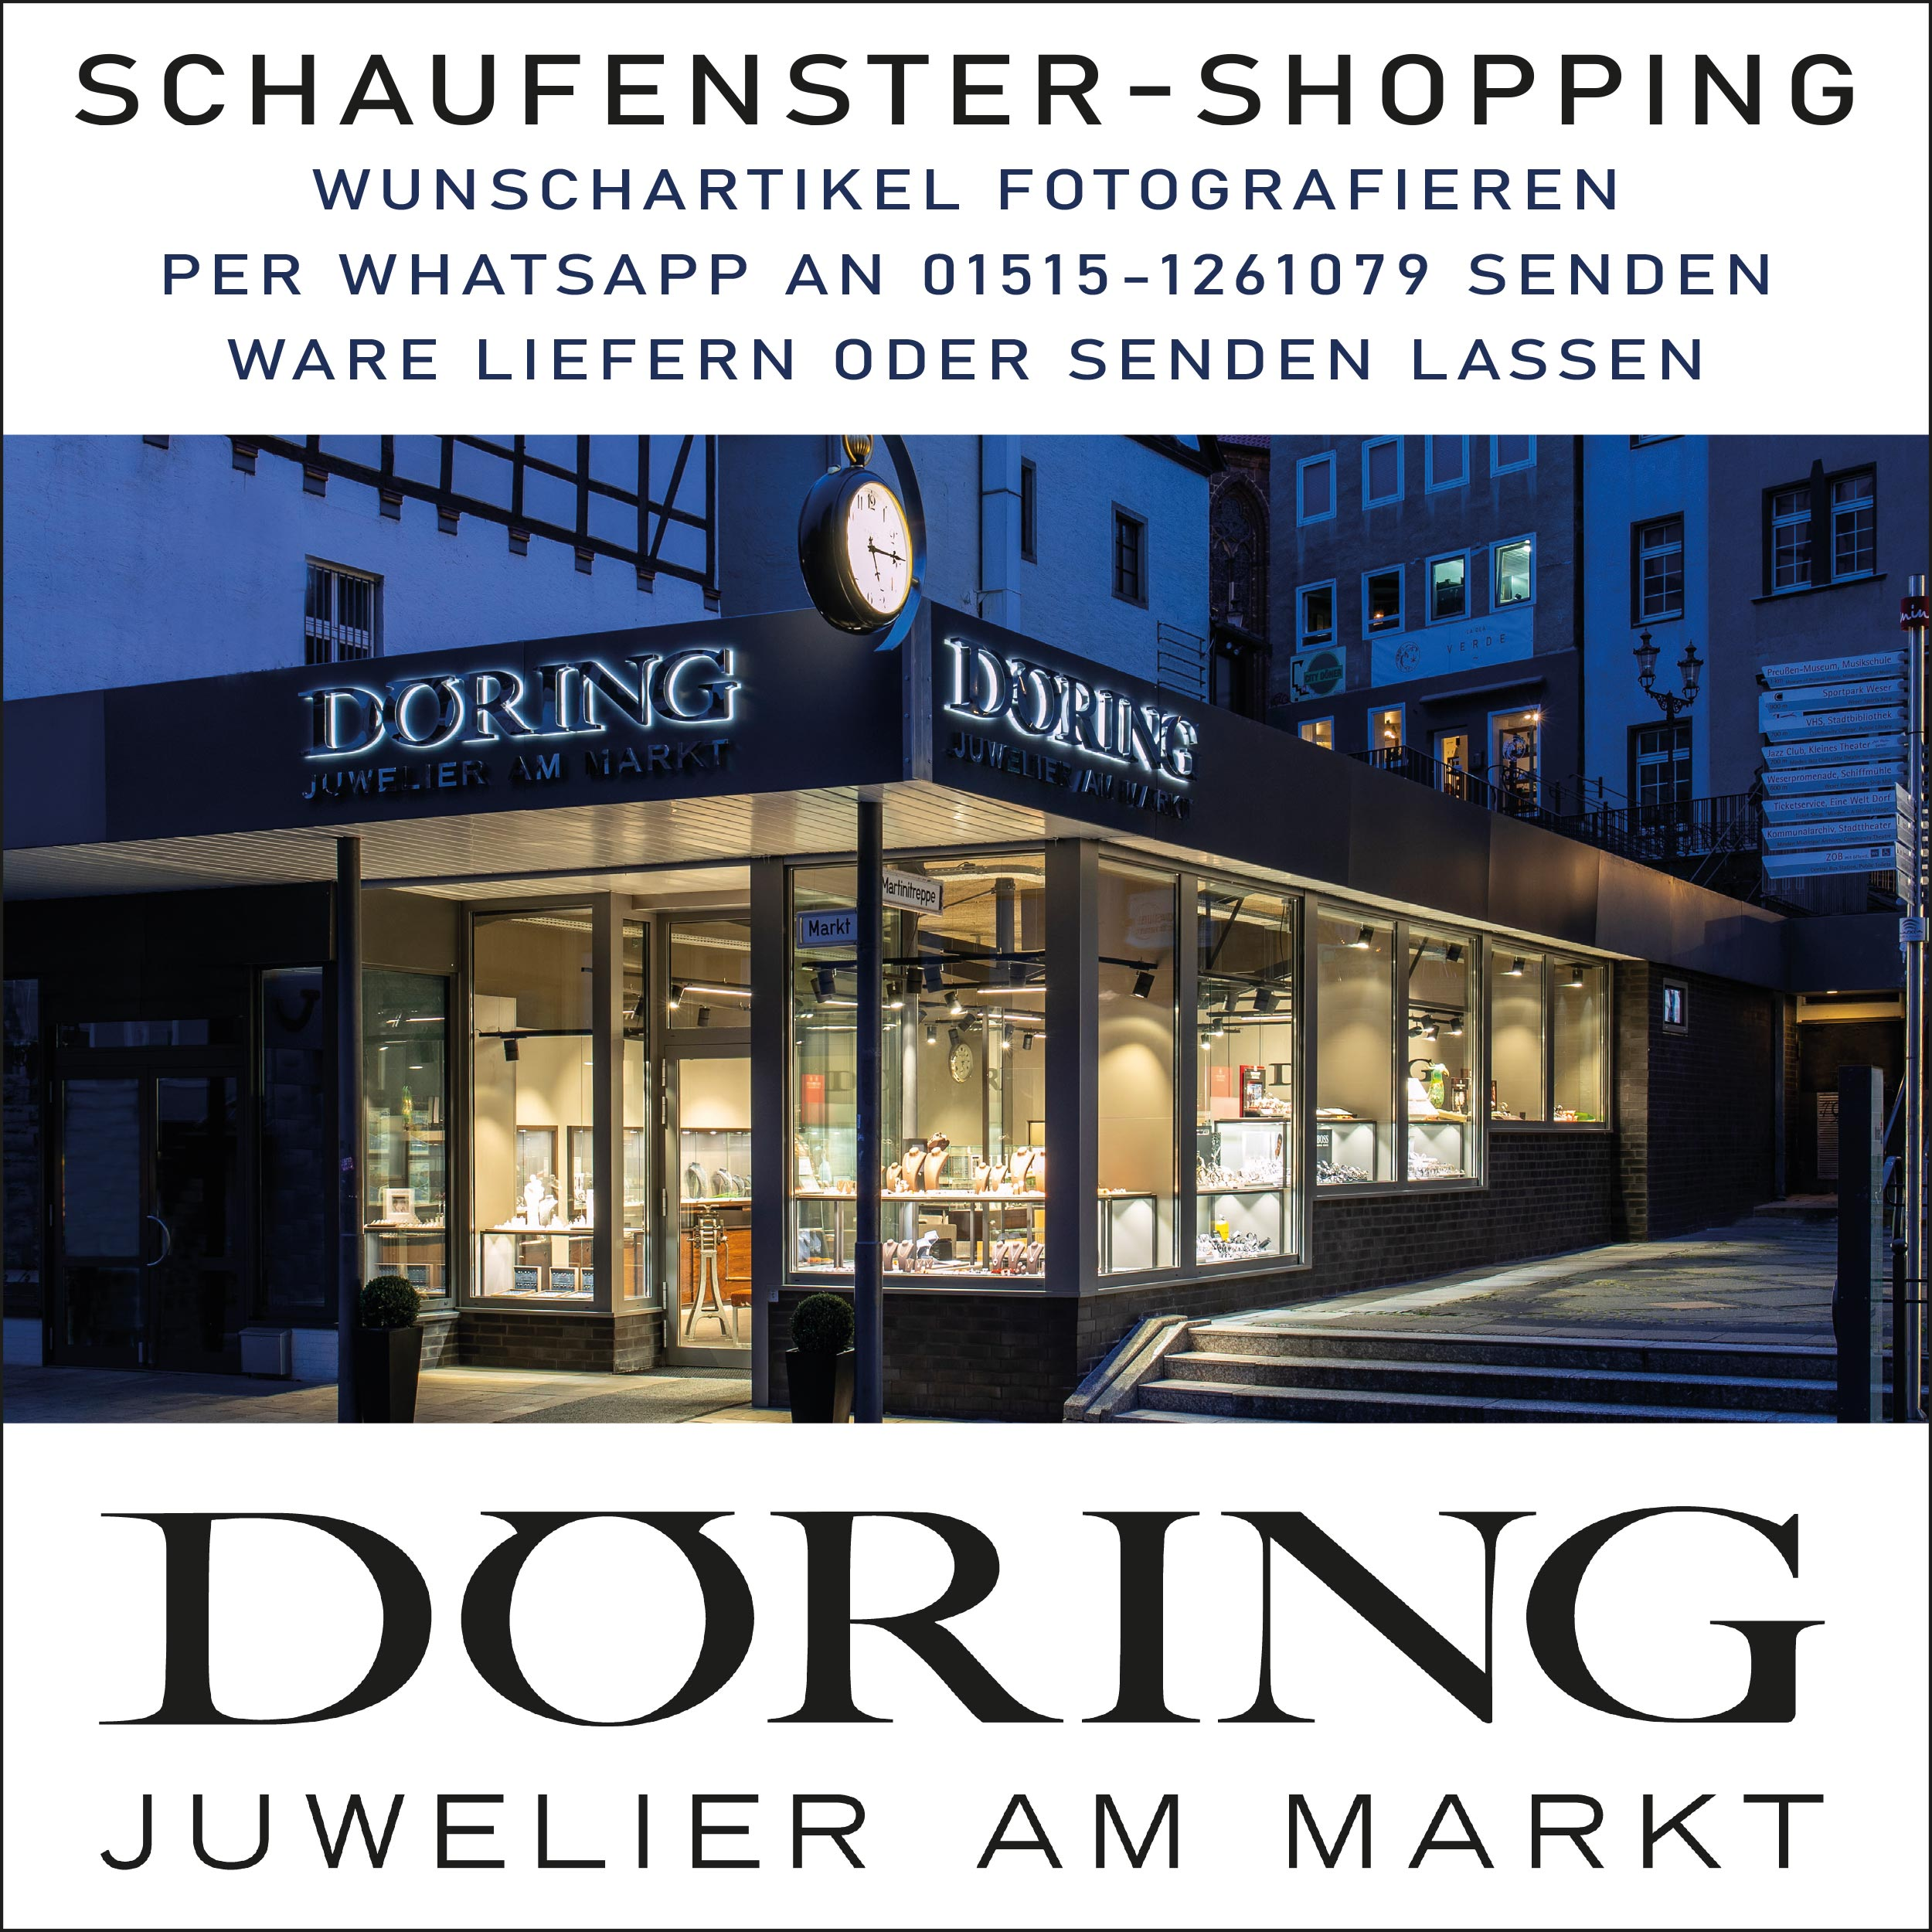 Schaufenster-shopping-doering